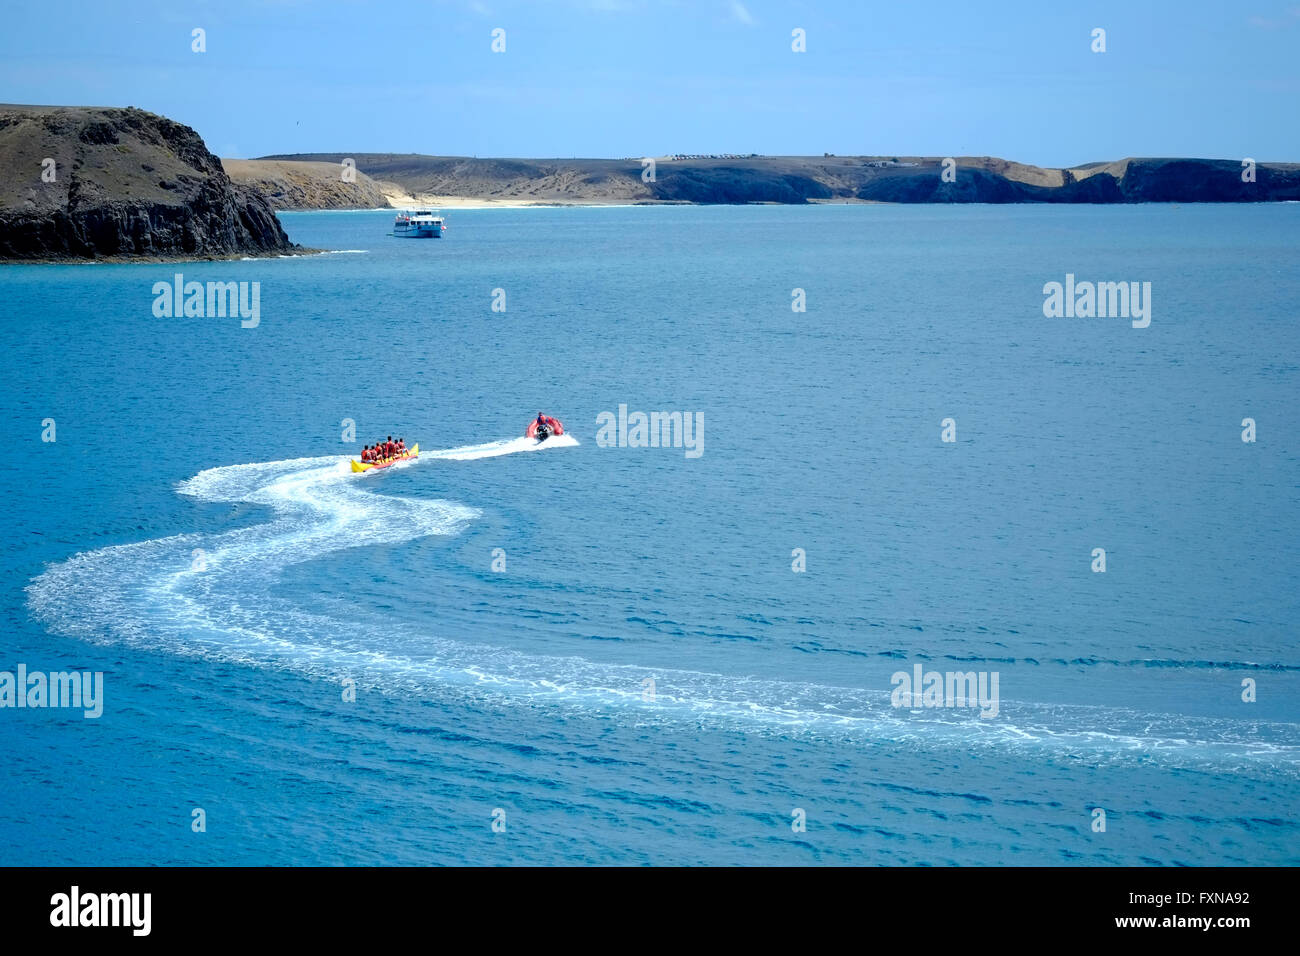 Holidaymakers enjoying a ride on a snaking banana boat on the sea - Stock Image